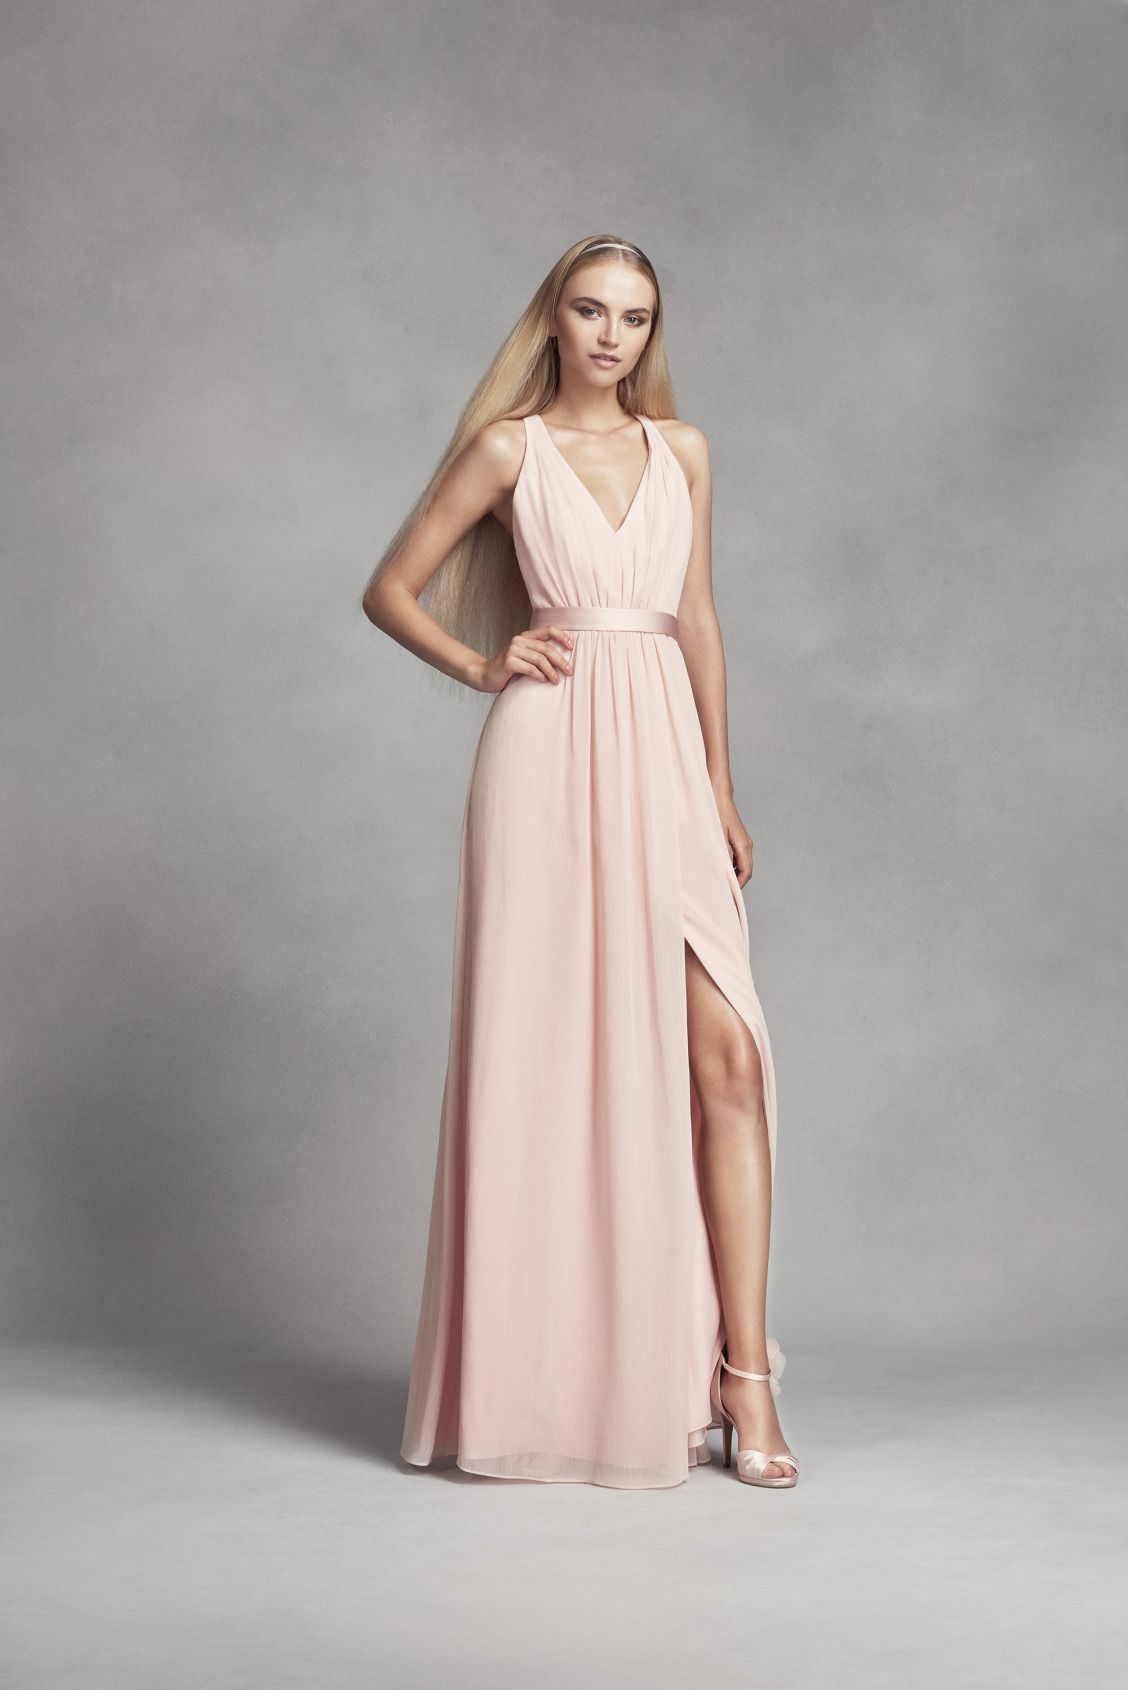 Long Petal Pink Halter Chiffon Dress With Low Crisscross Back White By Vera Bridesmaid Available At David S Bridal